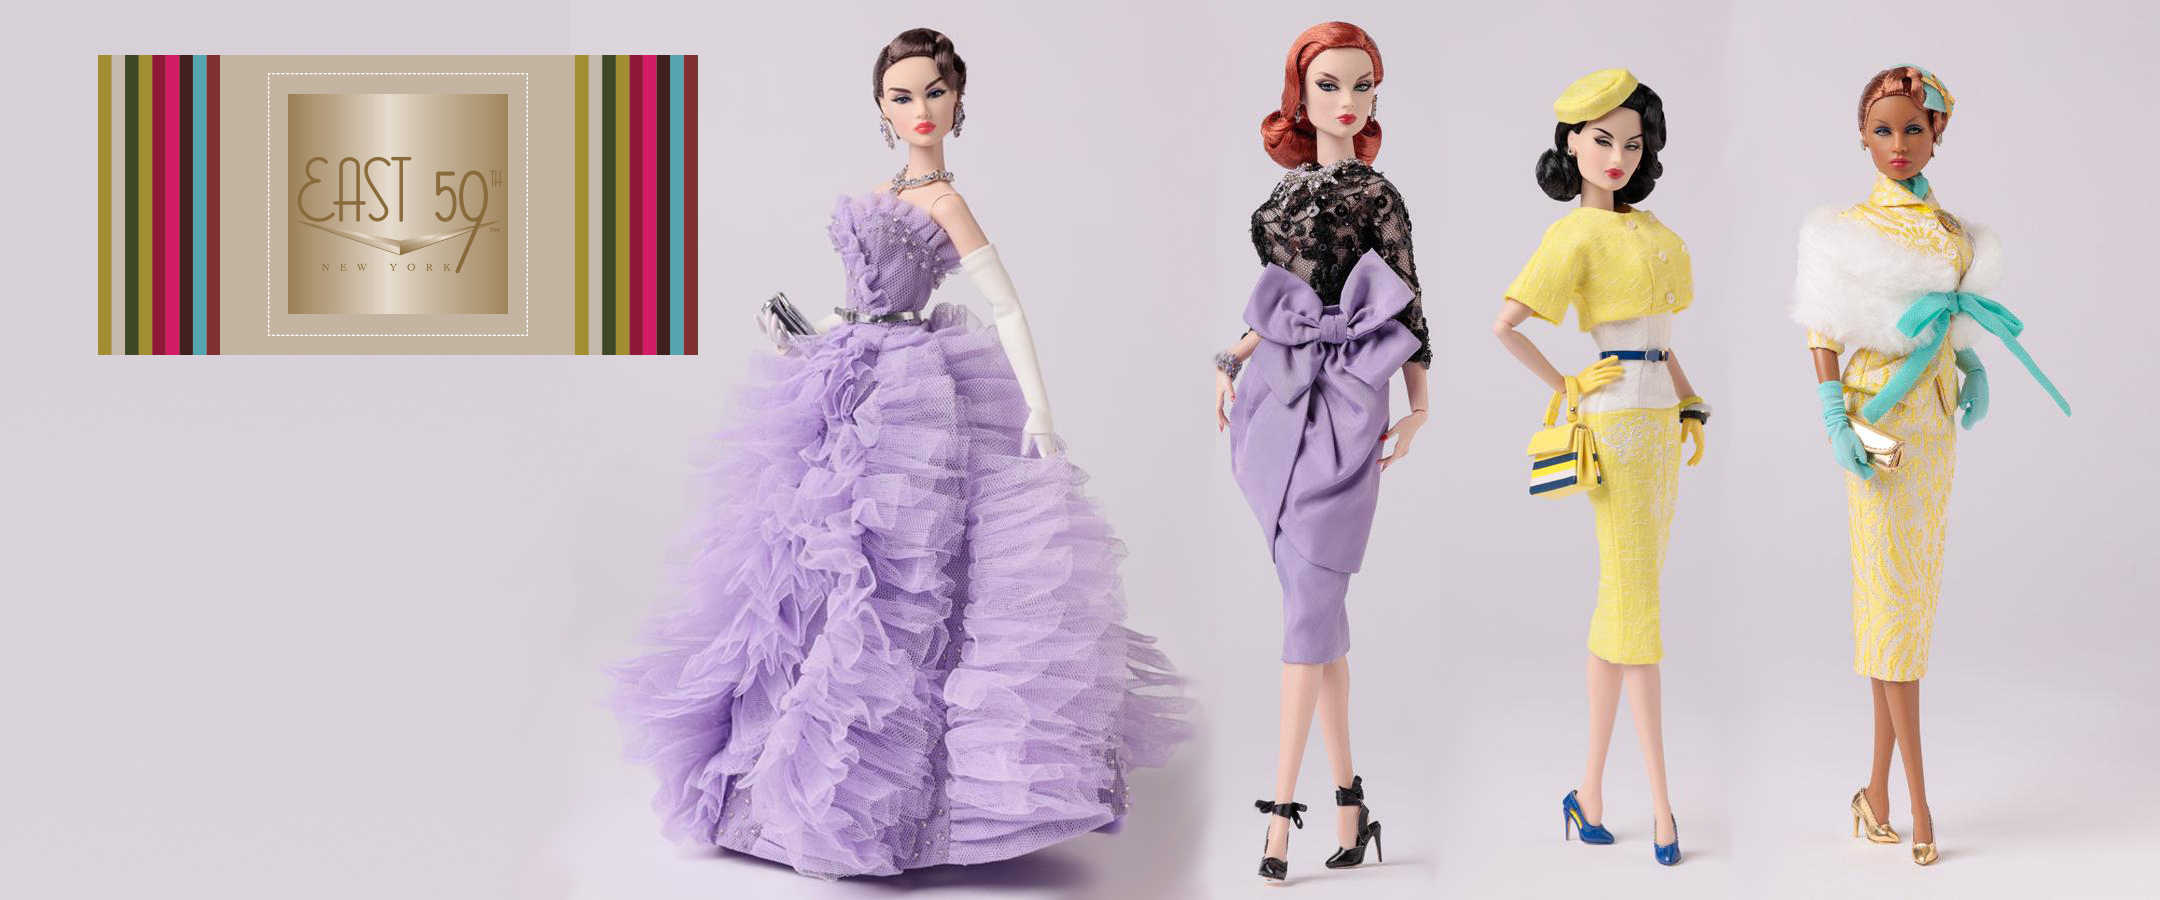 East 59th Collection Integrity Toys